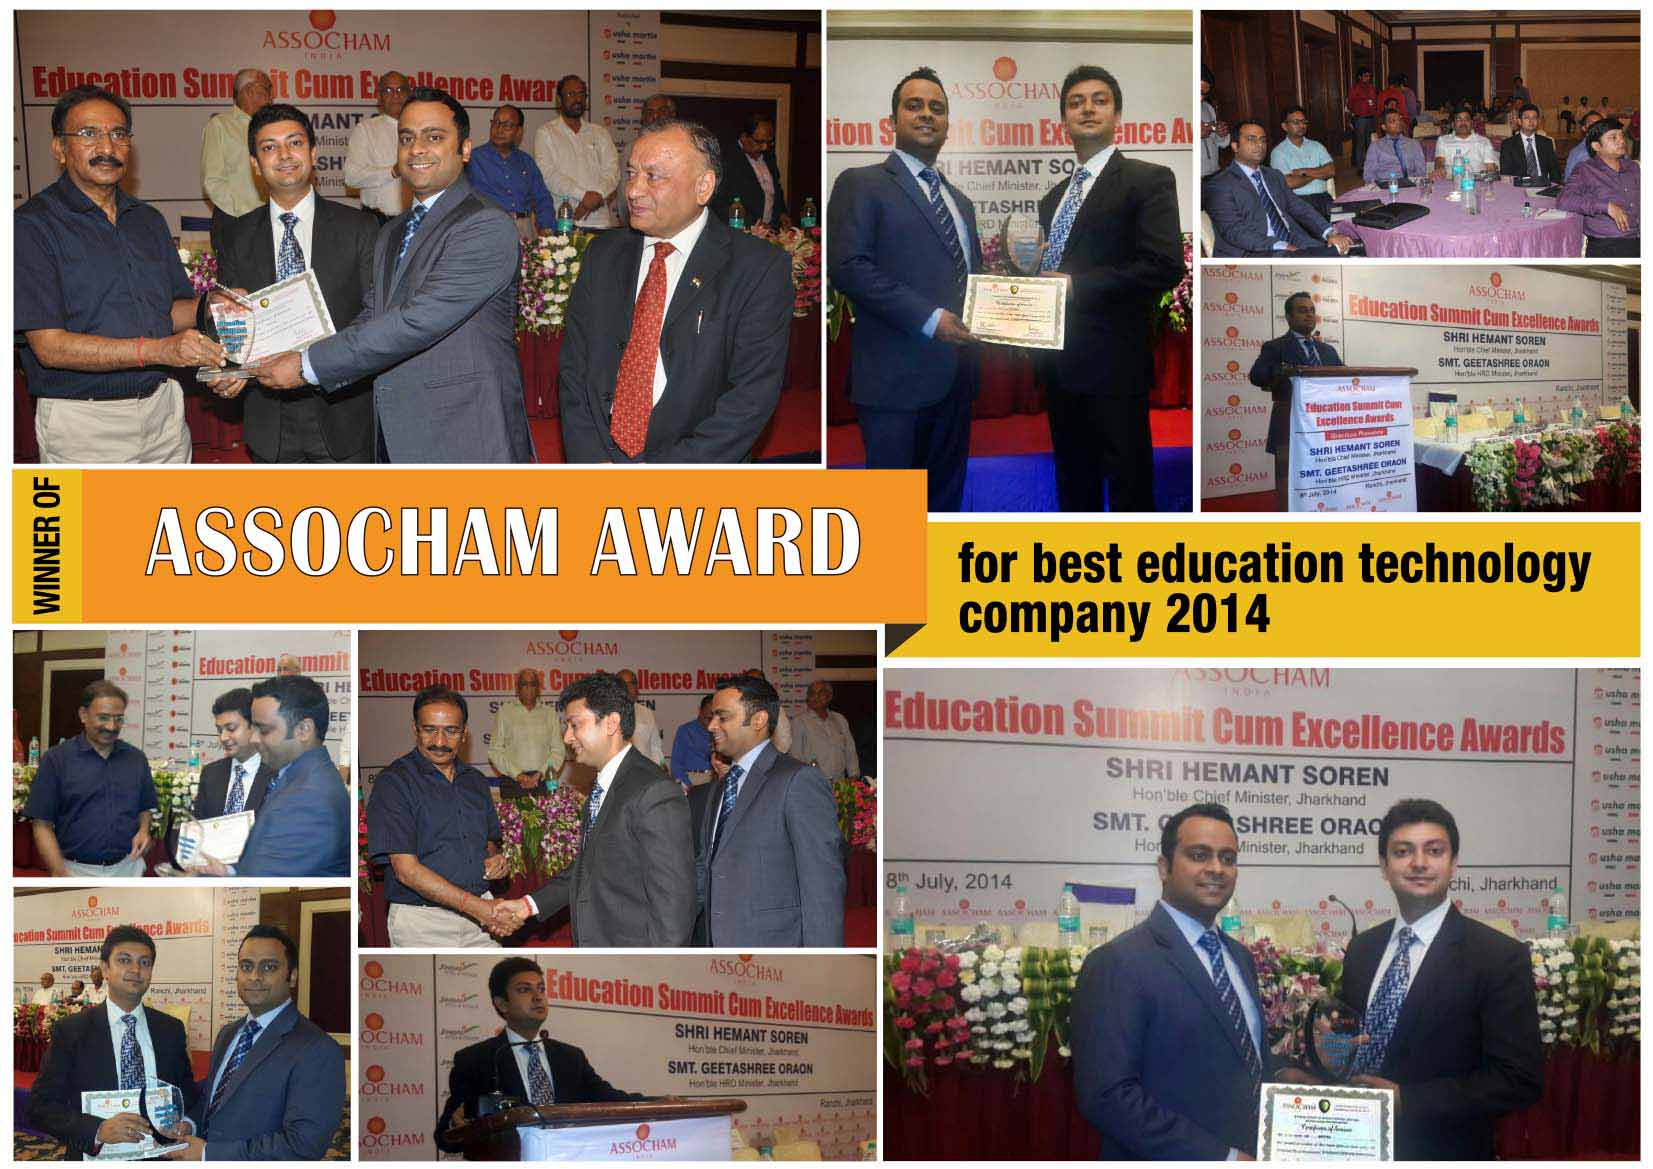 Industry Recognition for askIITians : Award by ASSOCHAM-2014